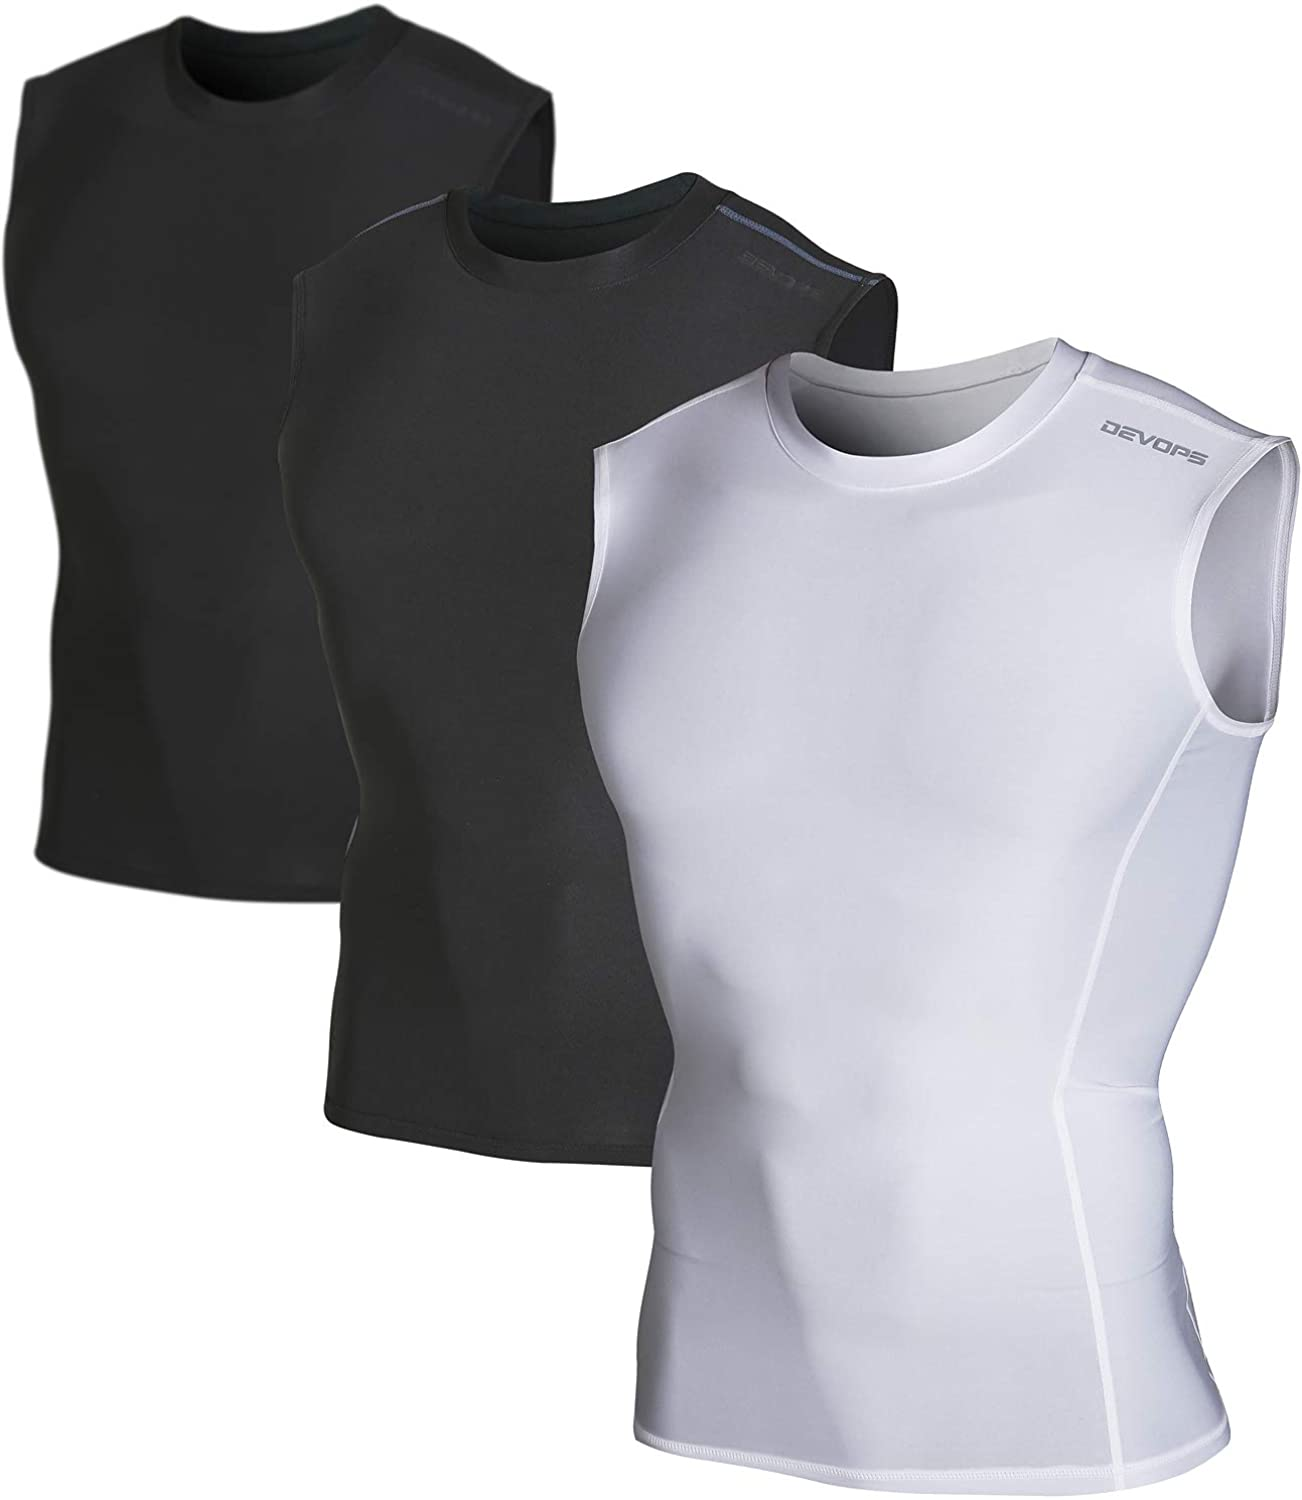 DEVOPS Men's 2~3 Pack Cool Dry Athletic Compression Baselayer Workout Sleeveless Shirts